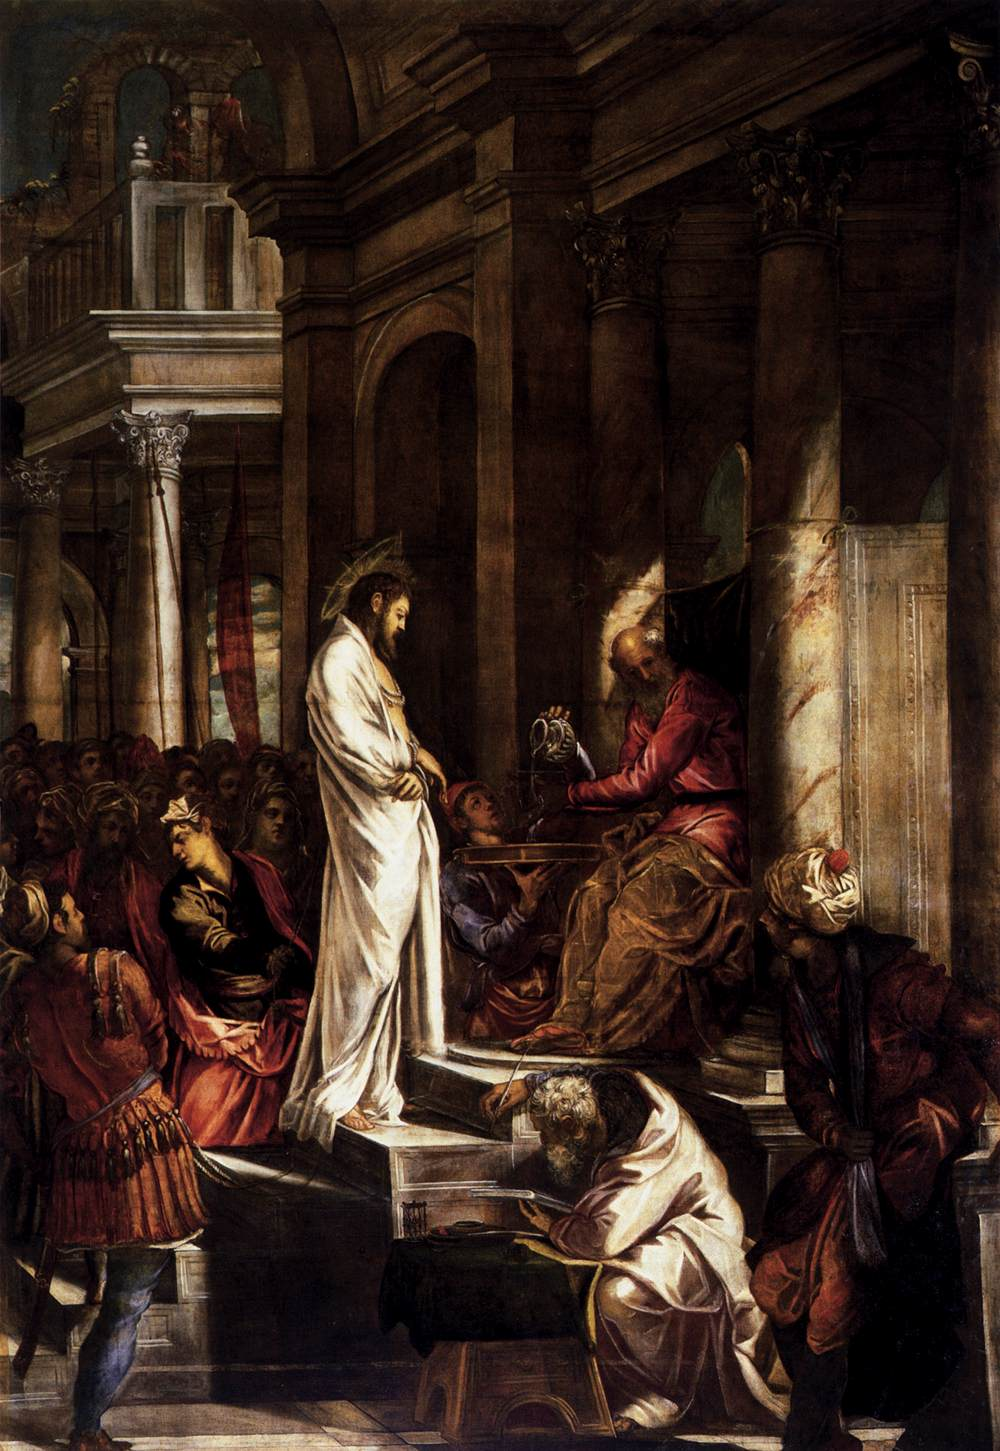 Christ before Pilate, 1566-1567